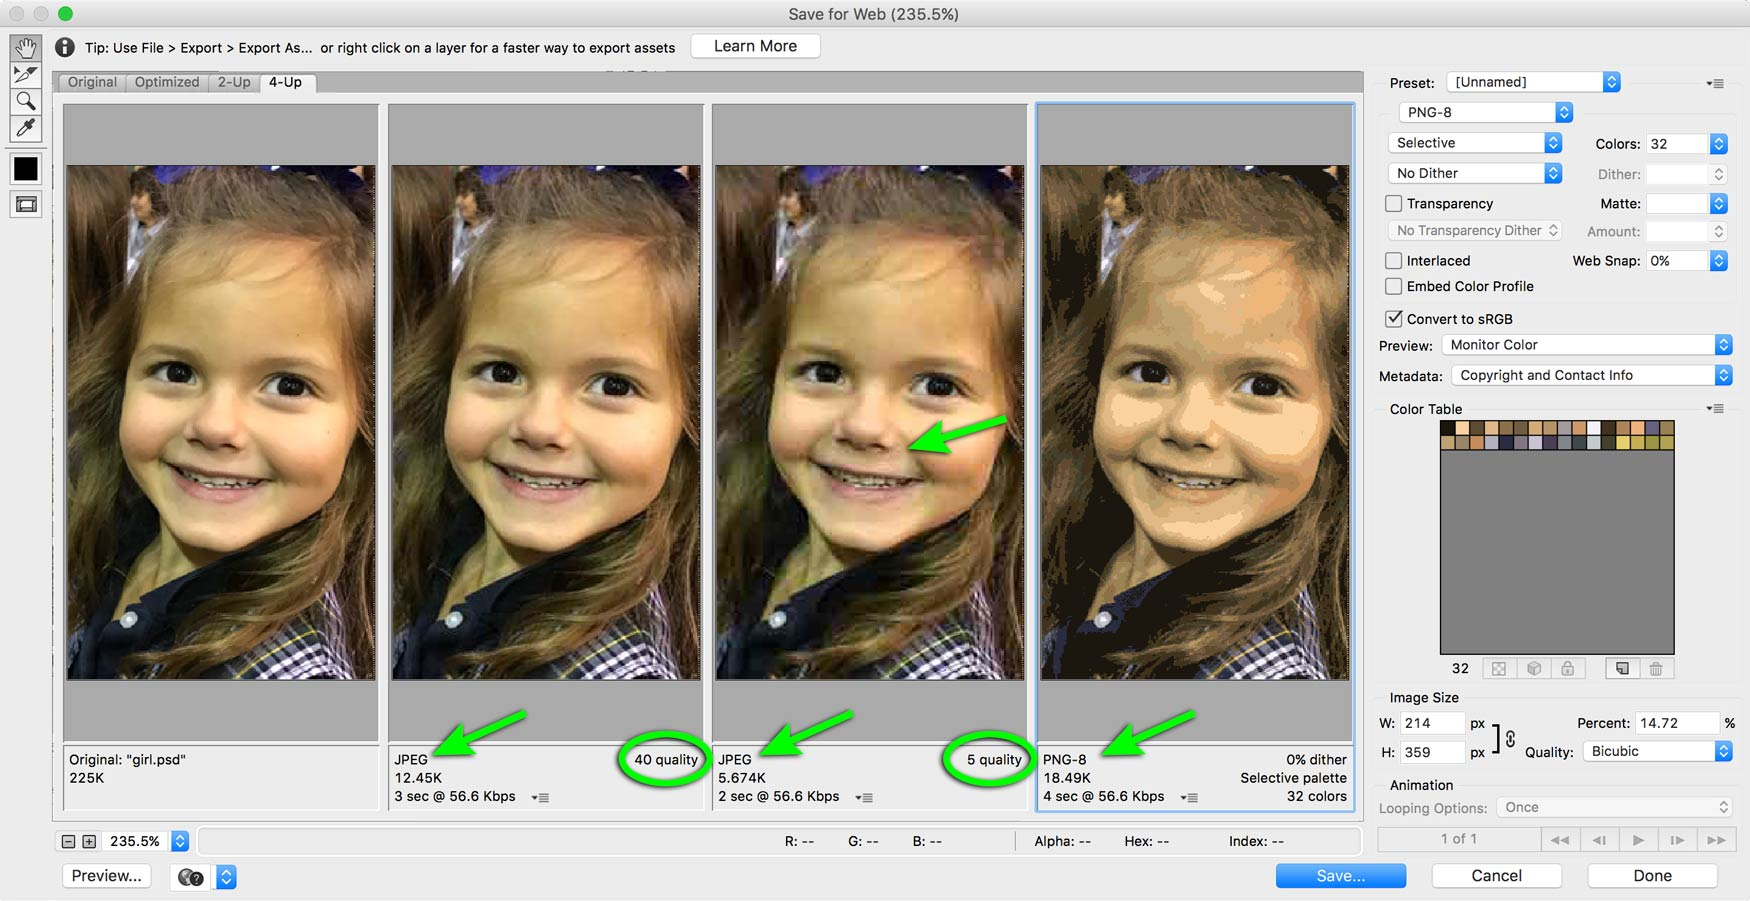 Photoshop Save For Web image size comparisons